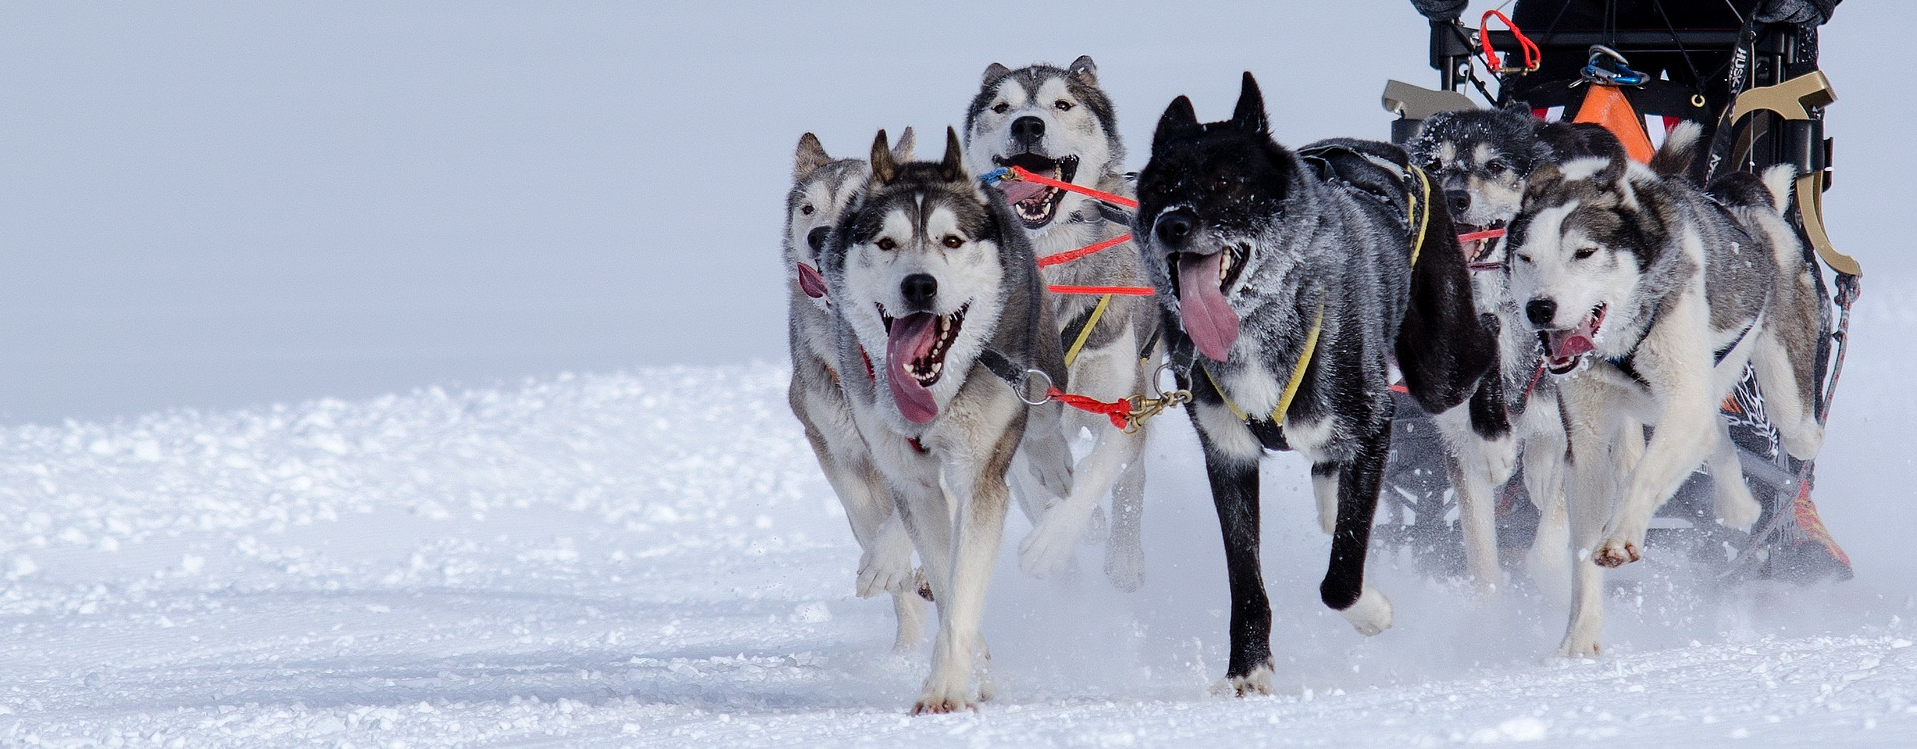 dog-sledding-team-building